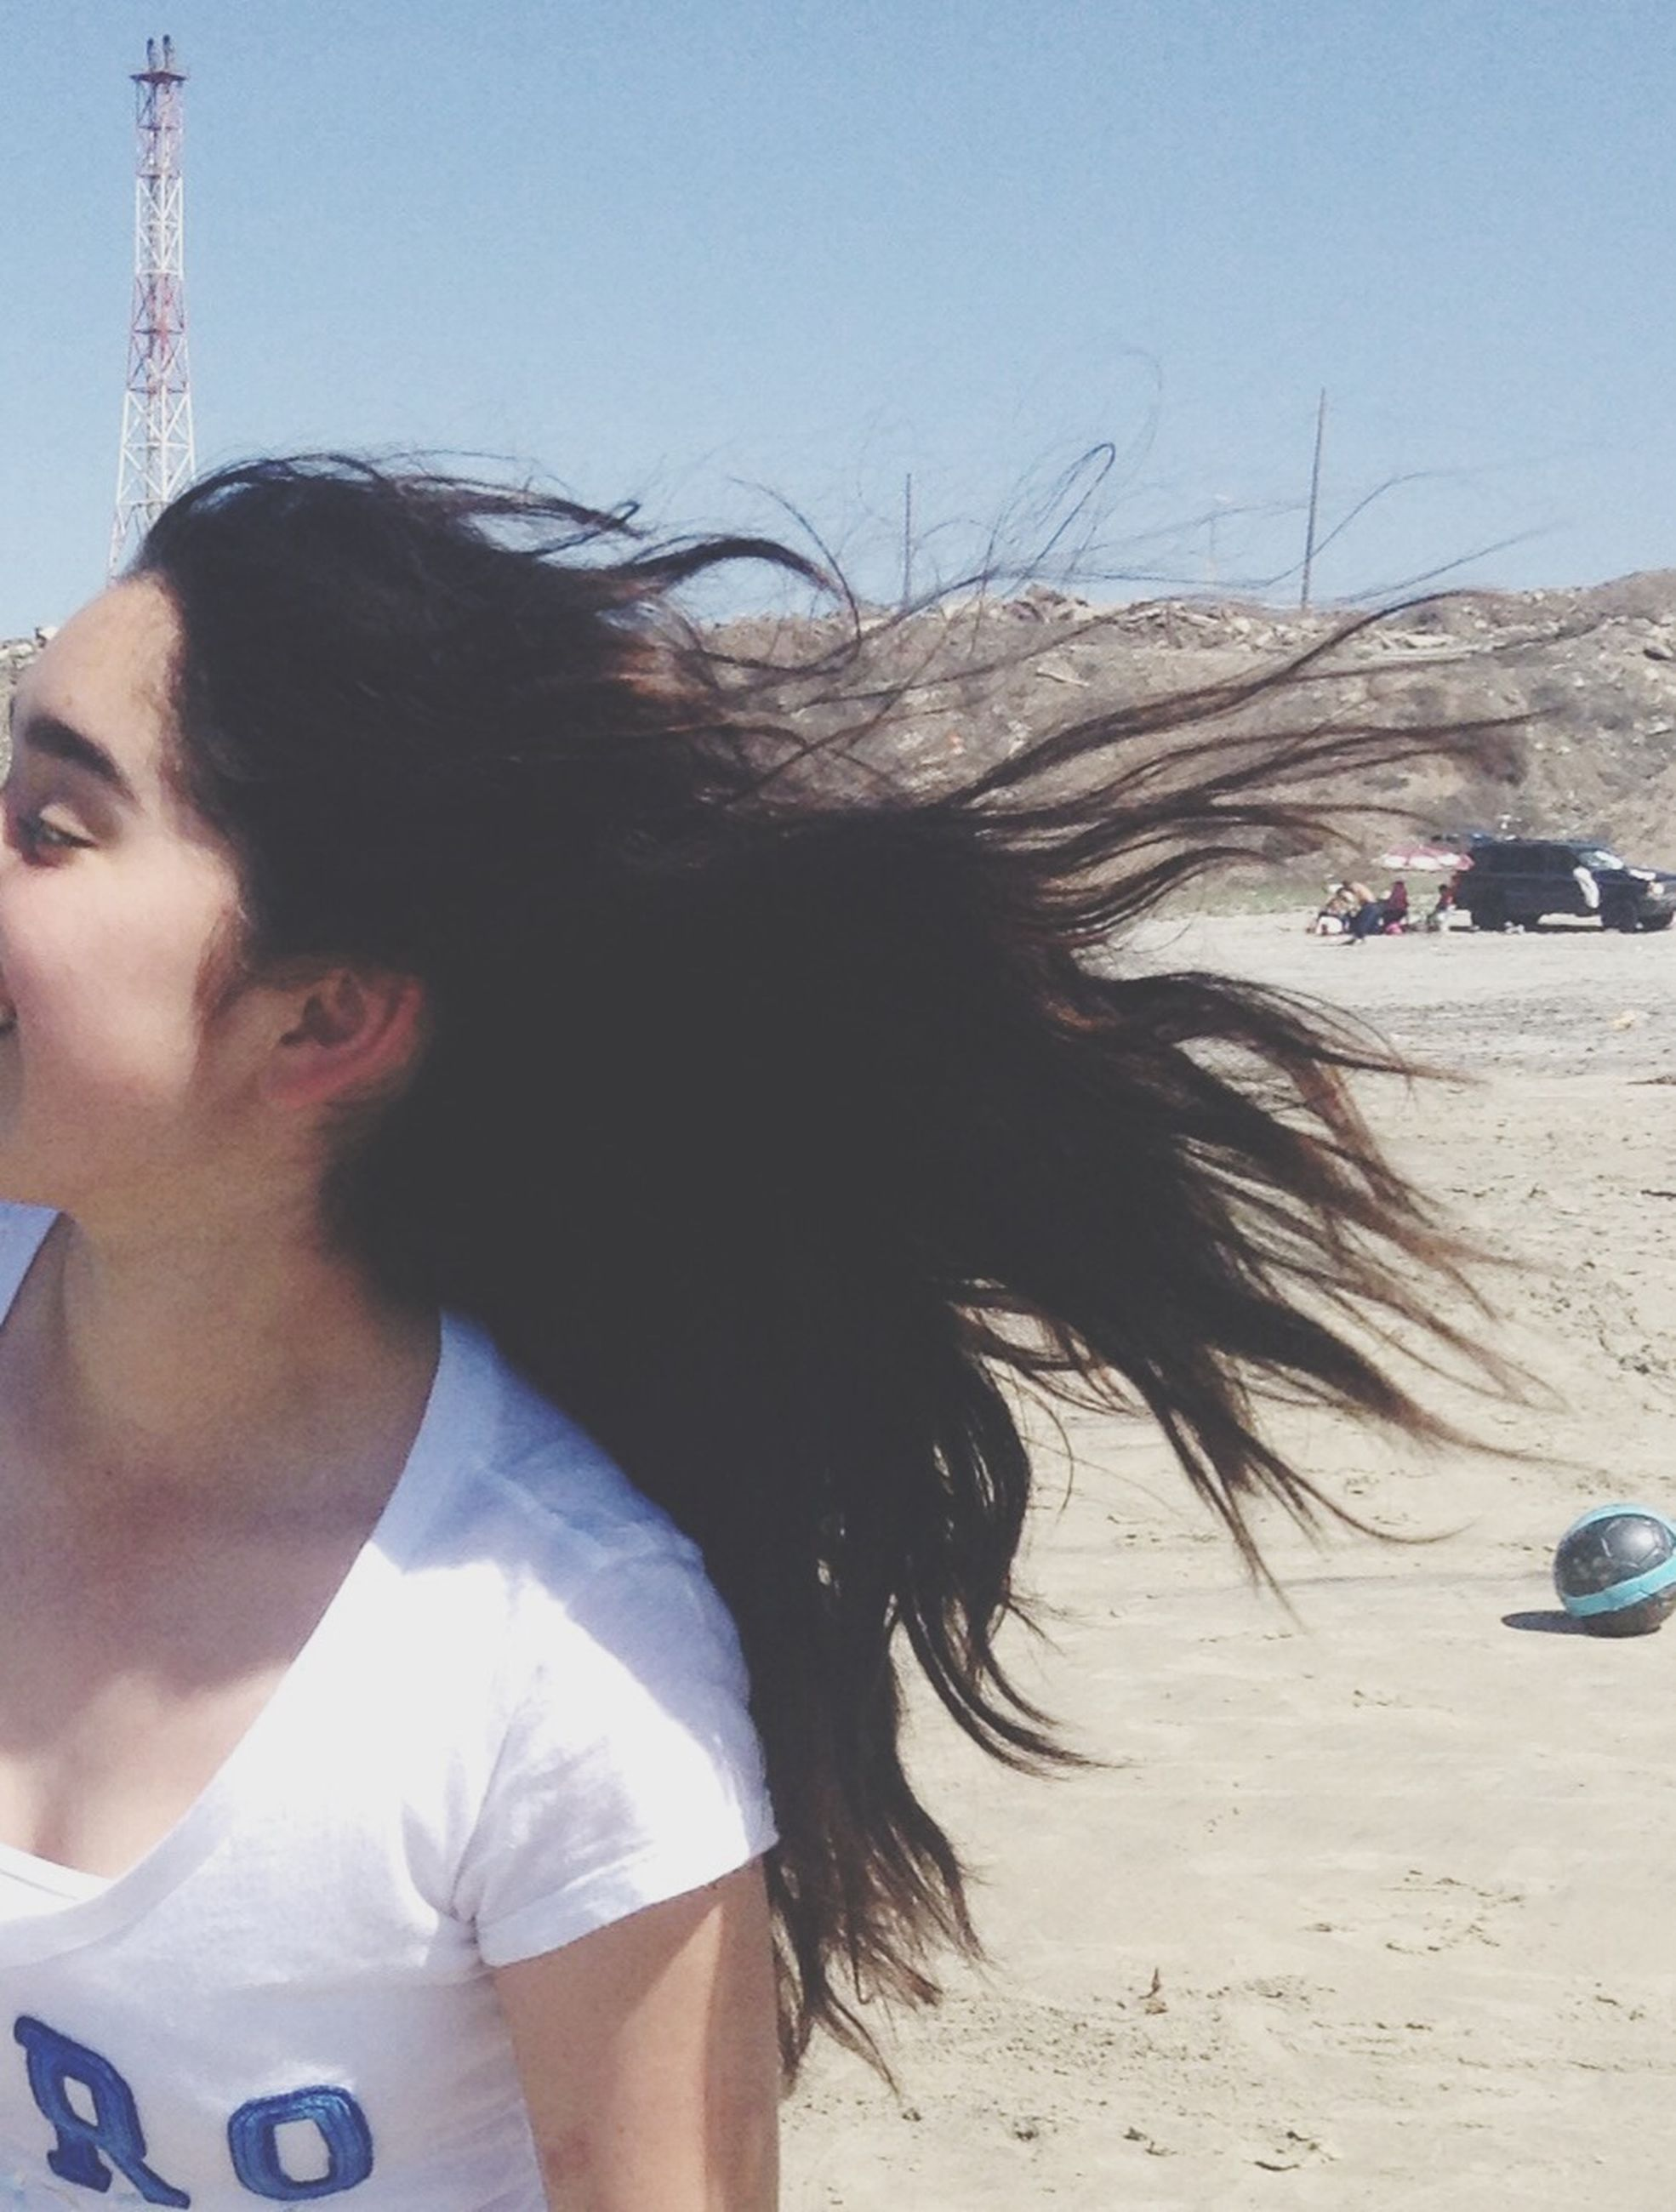 lifestyles, leisure activity, young adult, clear sky, person, casual clothing, young women, headshot, standing, long hair, day, three quarter length, outdoors, side view, waist up, sunlight, rear view